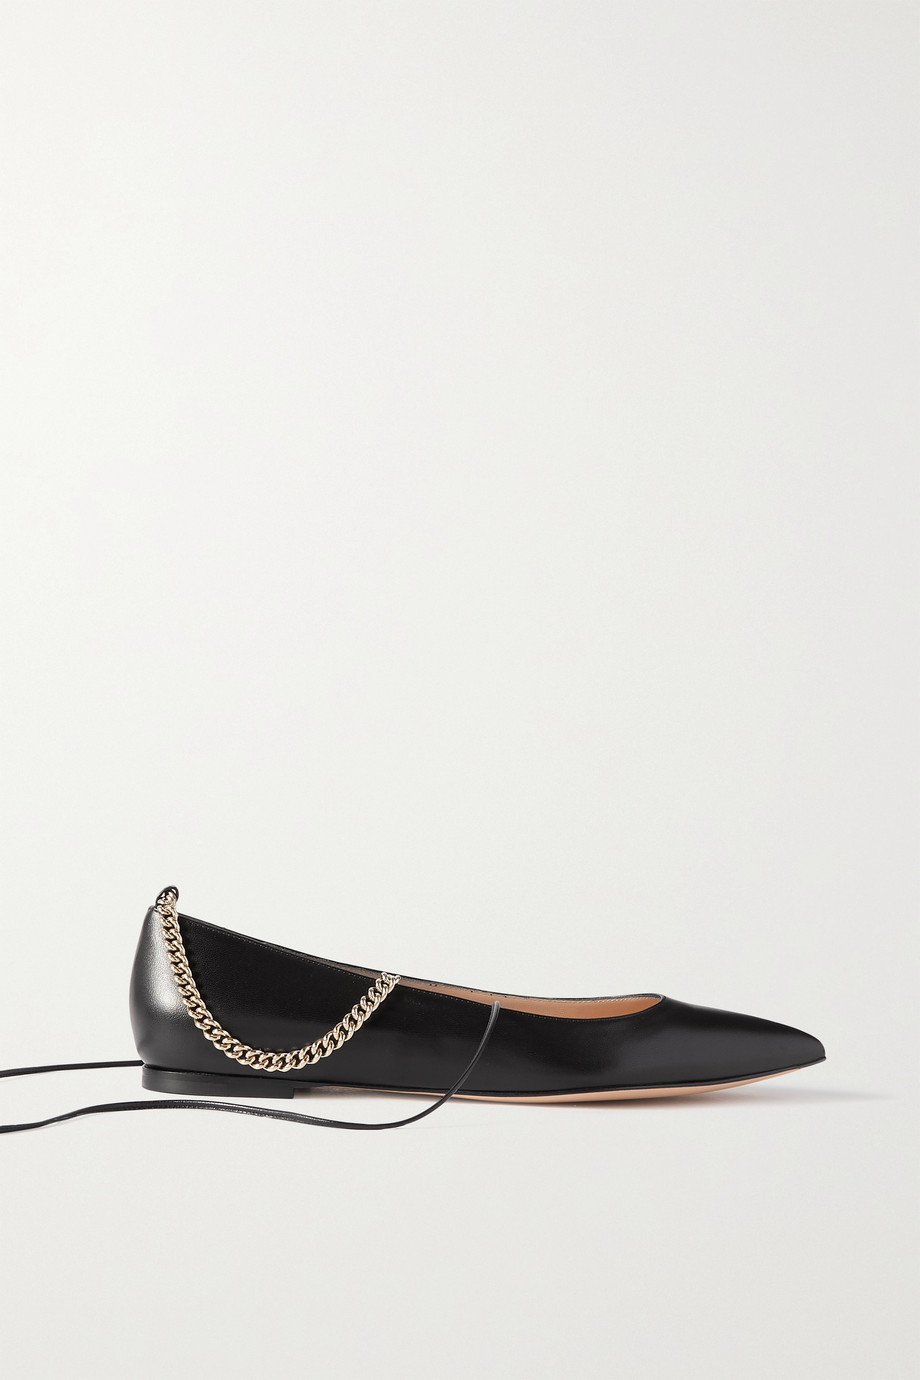 GIANVITO ROSSI Chain-embellished leather point-toe flats